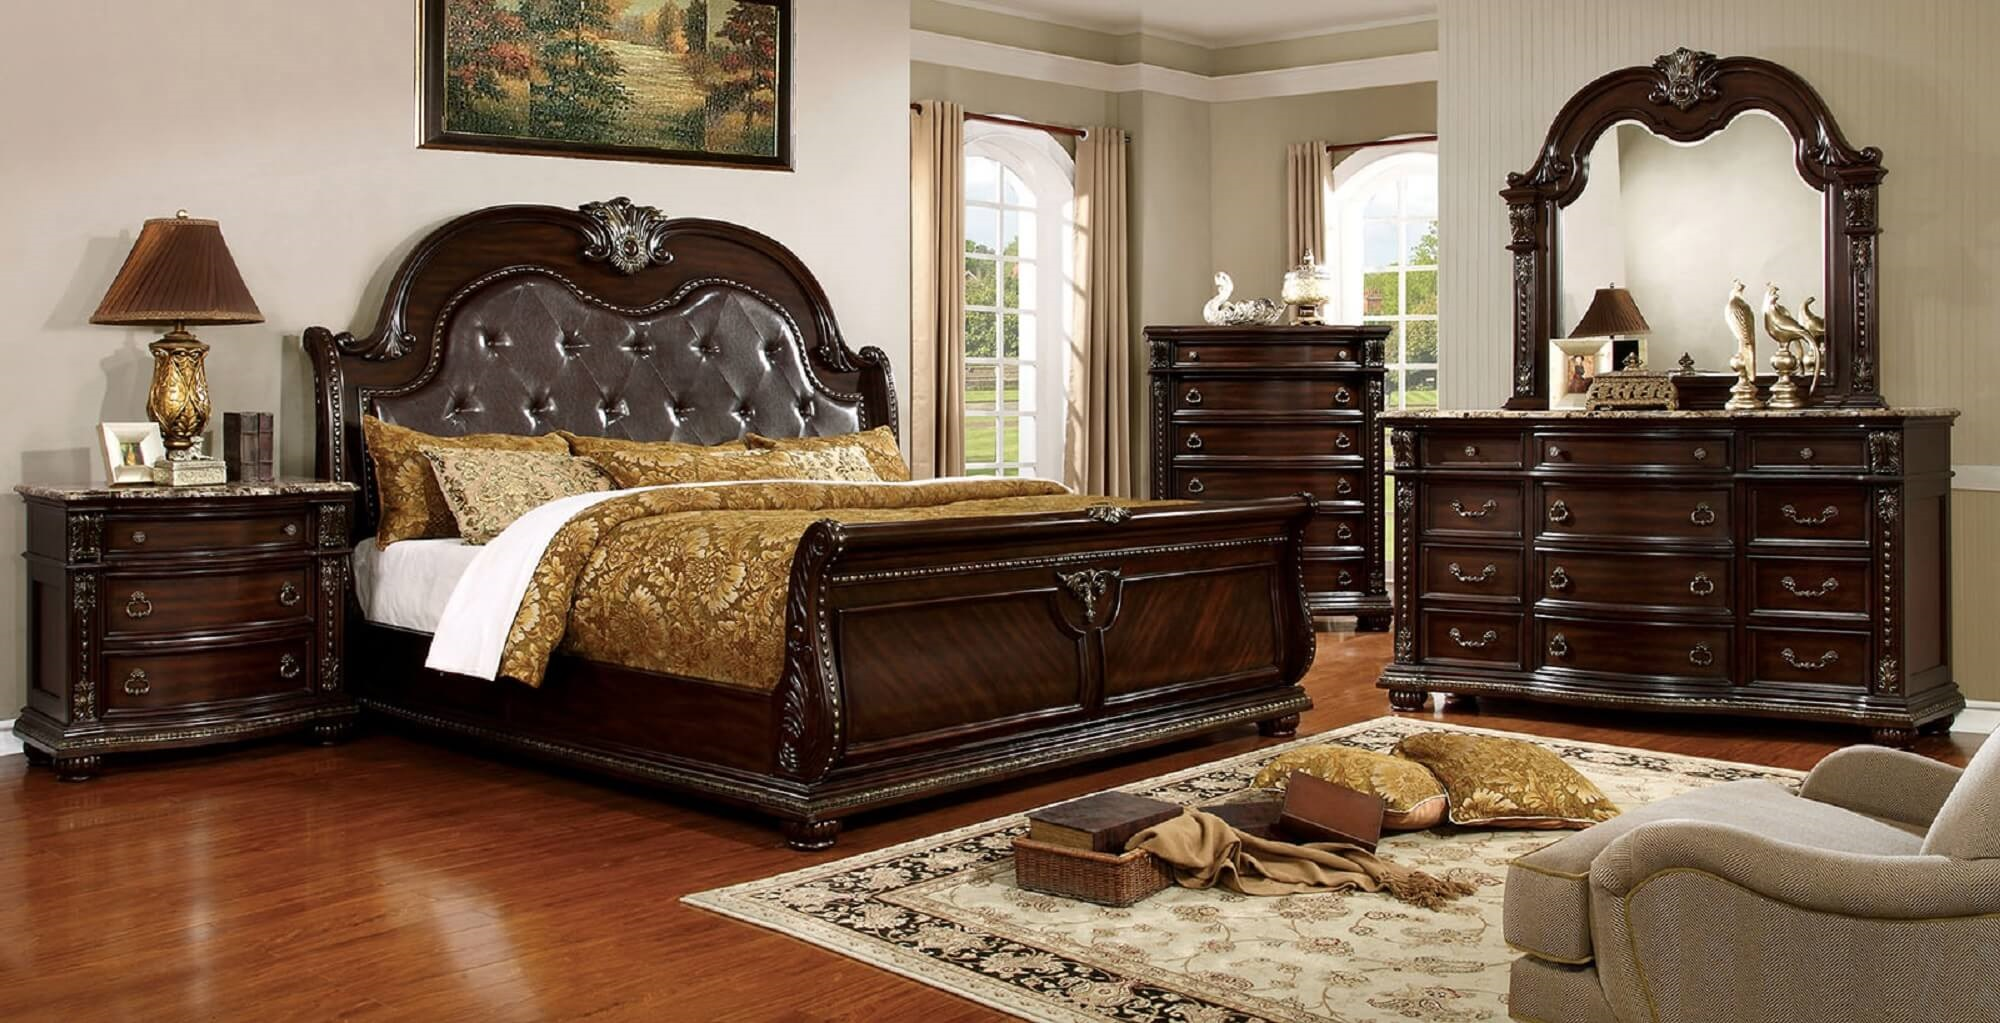 Fromberg Nightstand Marble Top Brown Cherry Finish